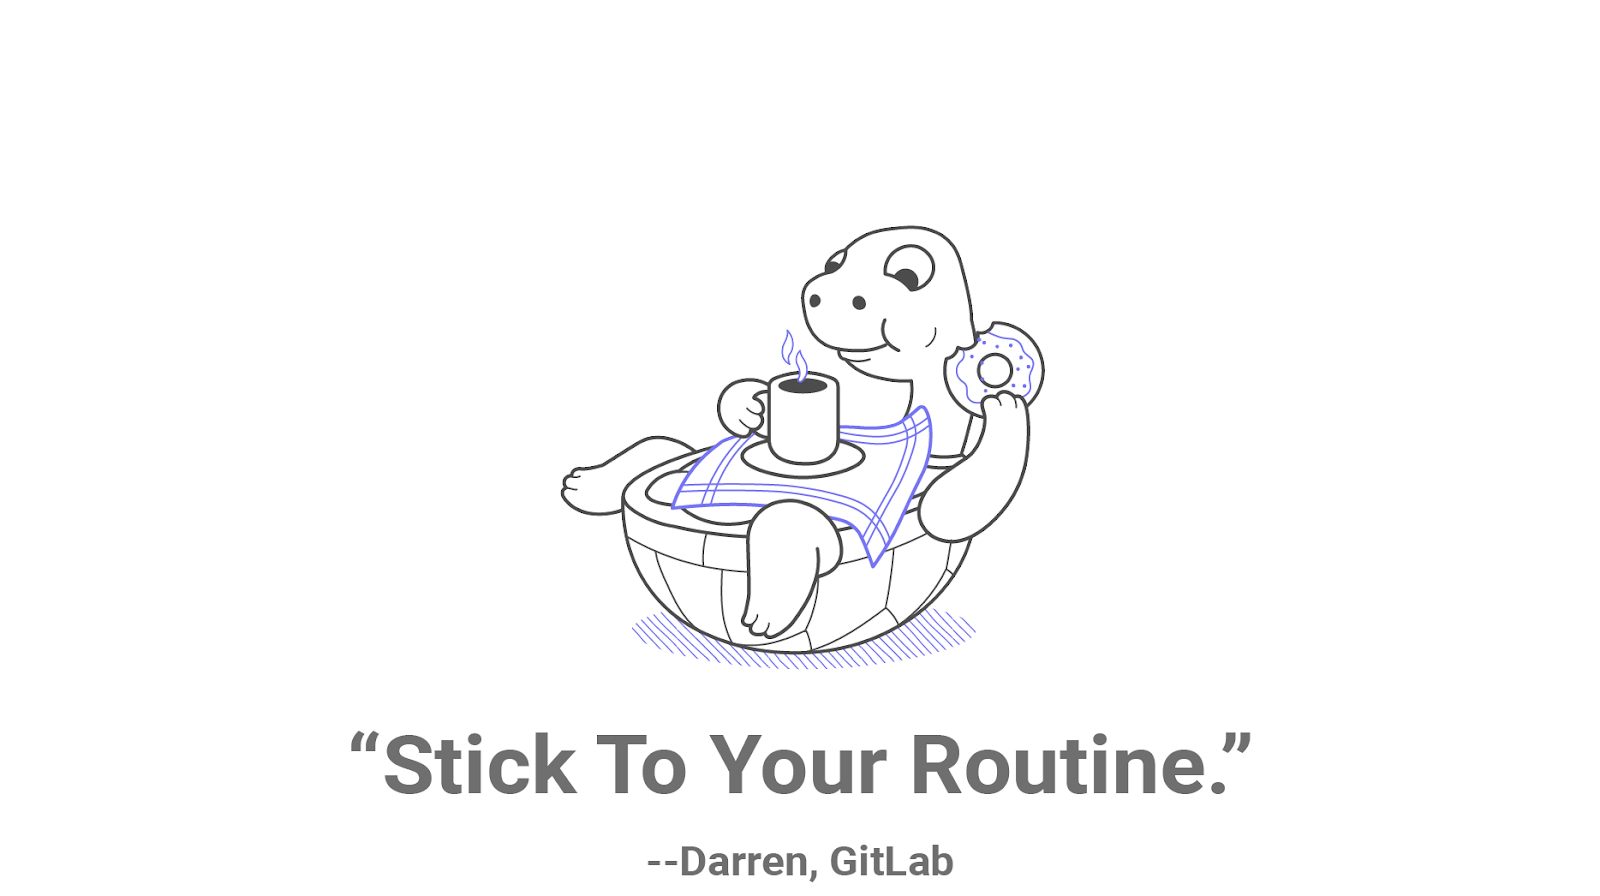 Stick to your routine when working from home.